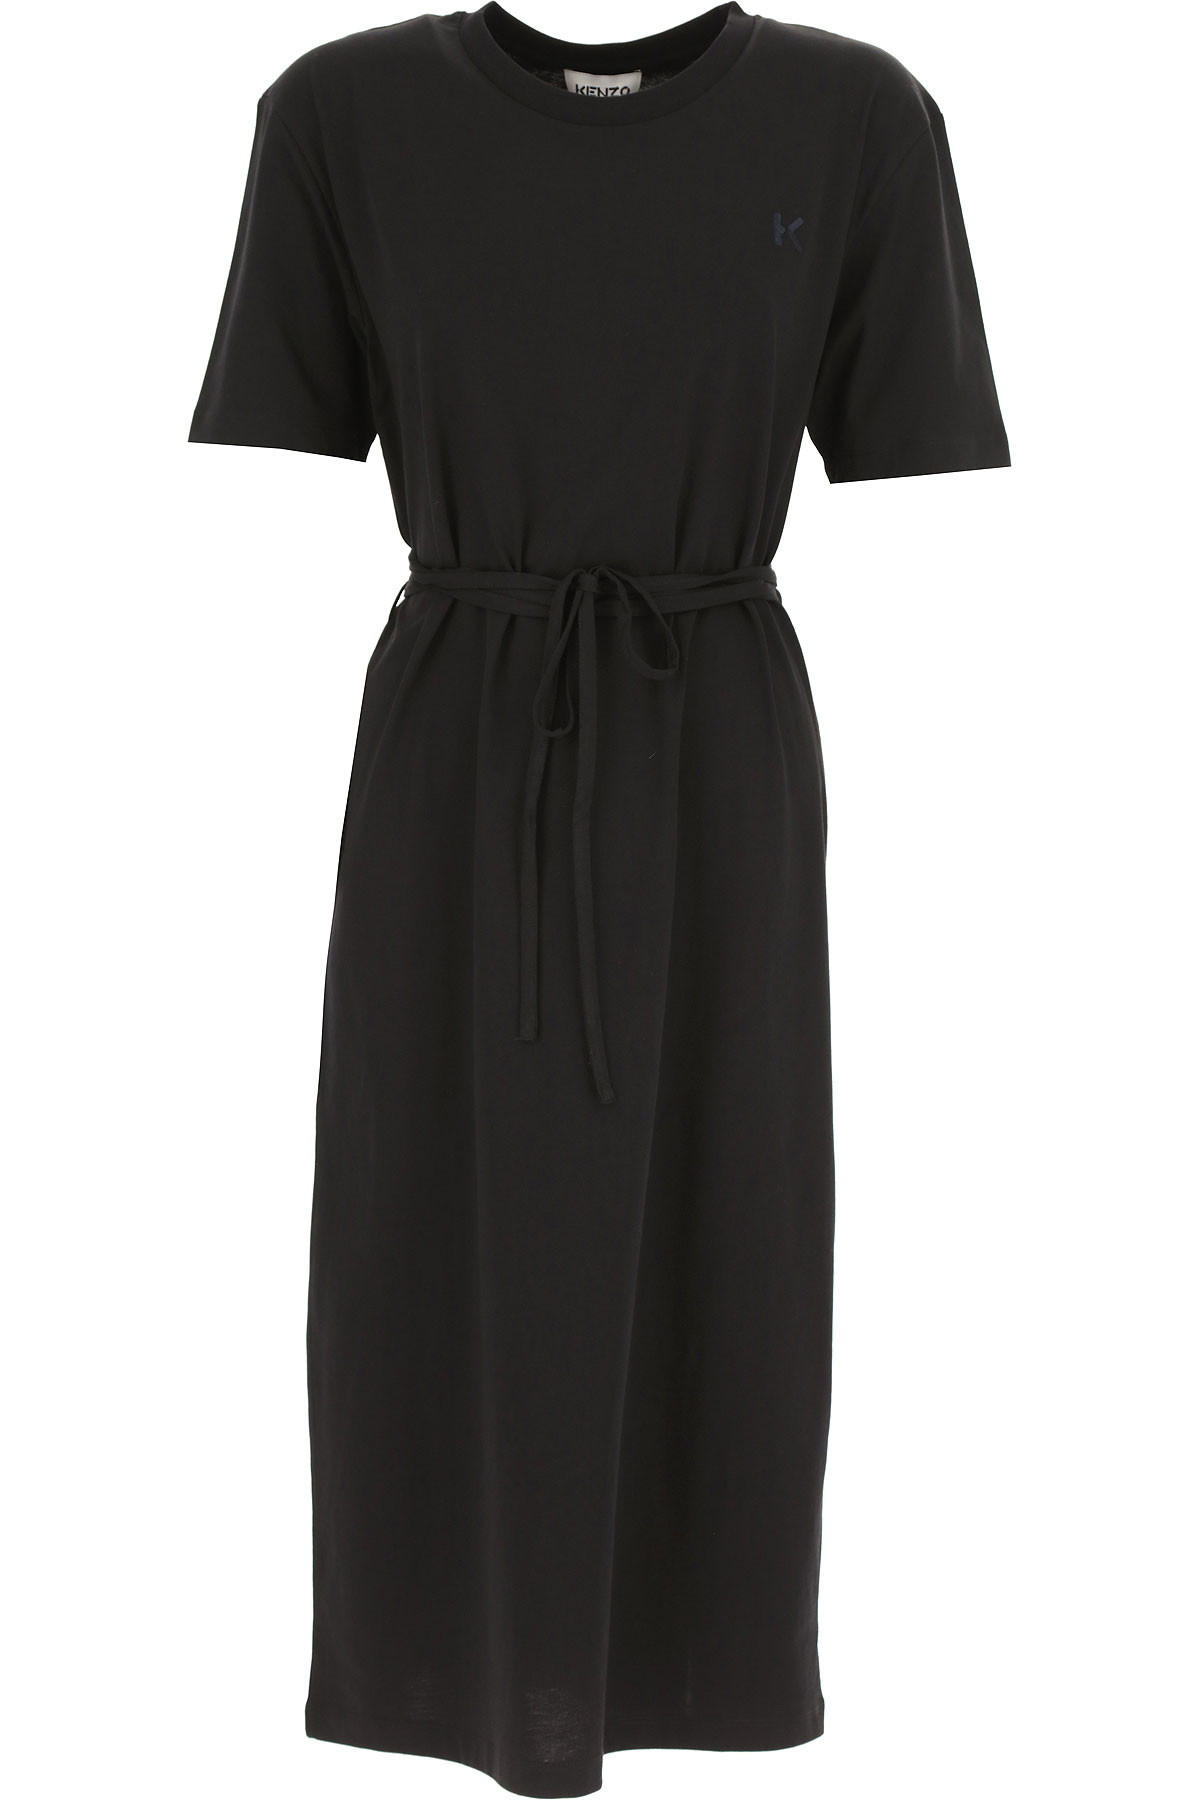 Kenzo Dress for Women, Evening Cocktail Party On Sale, Black, Cotton, 2019, 6 8